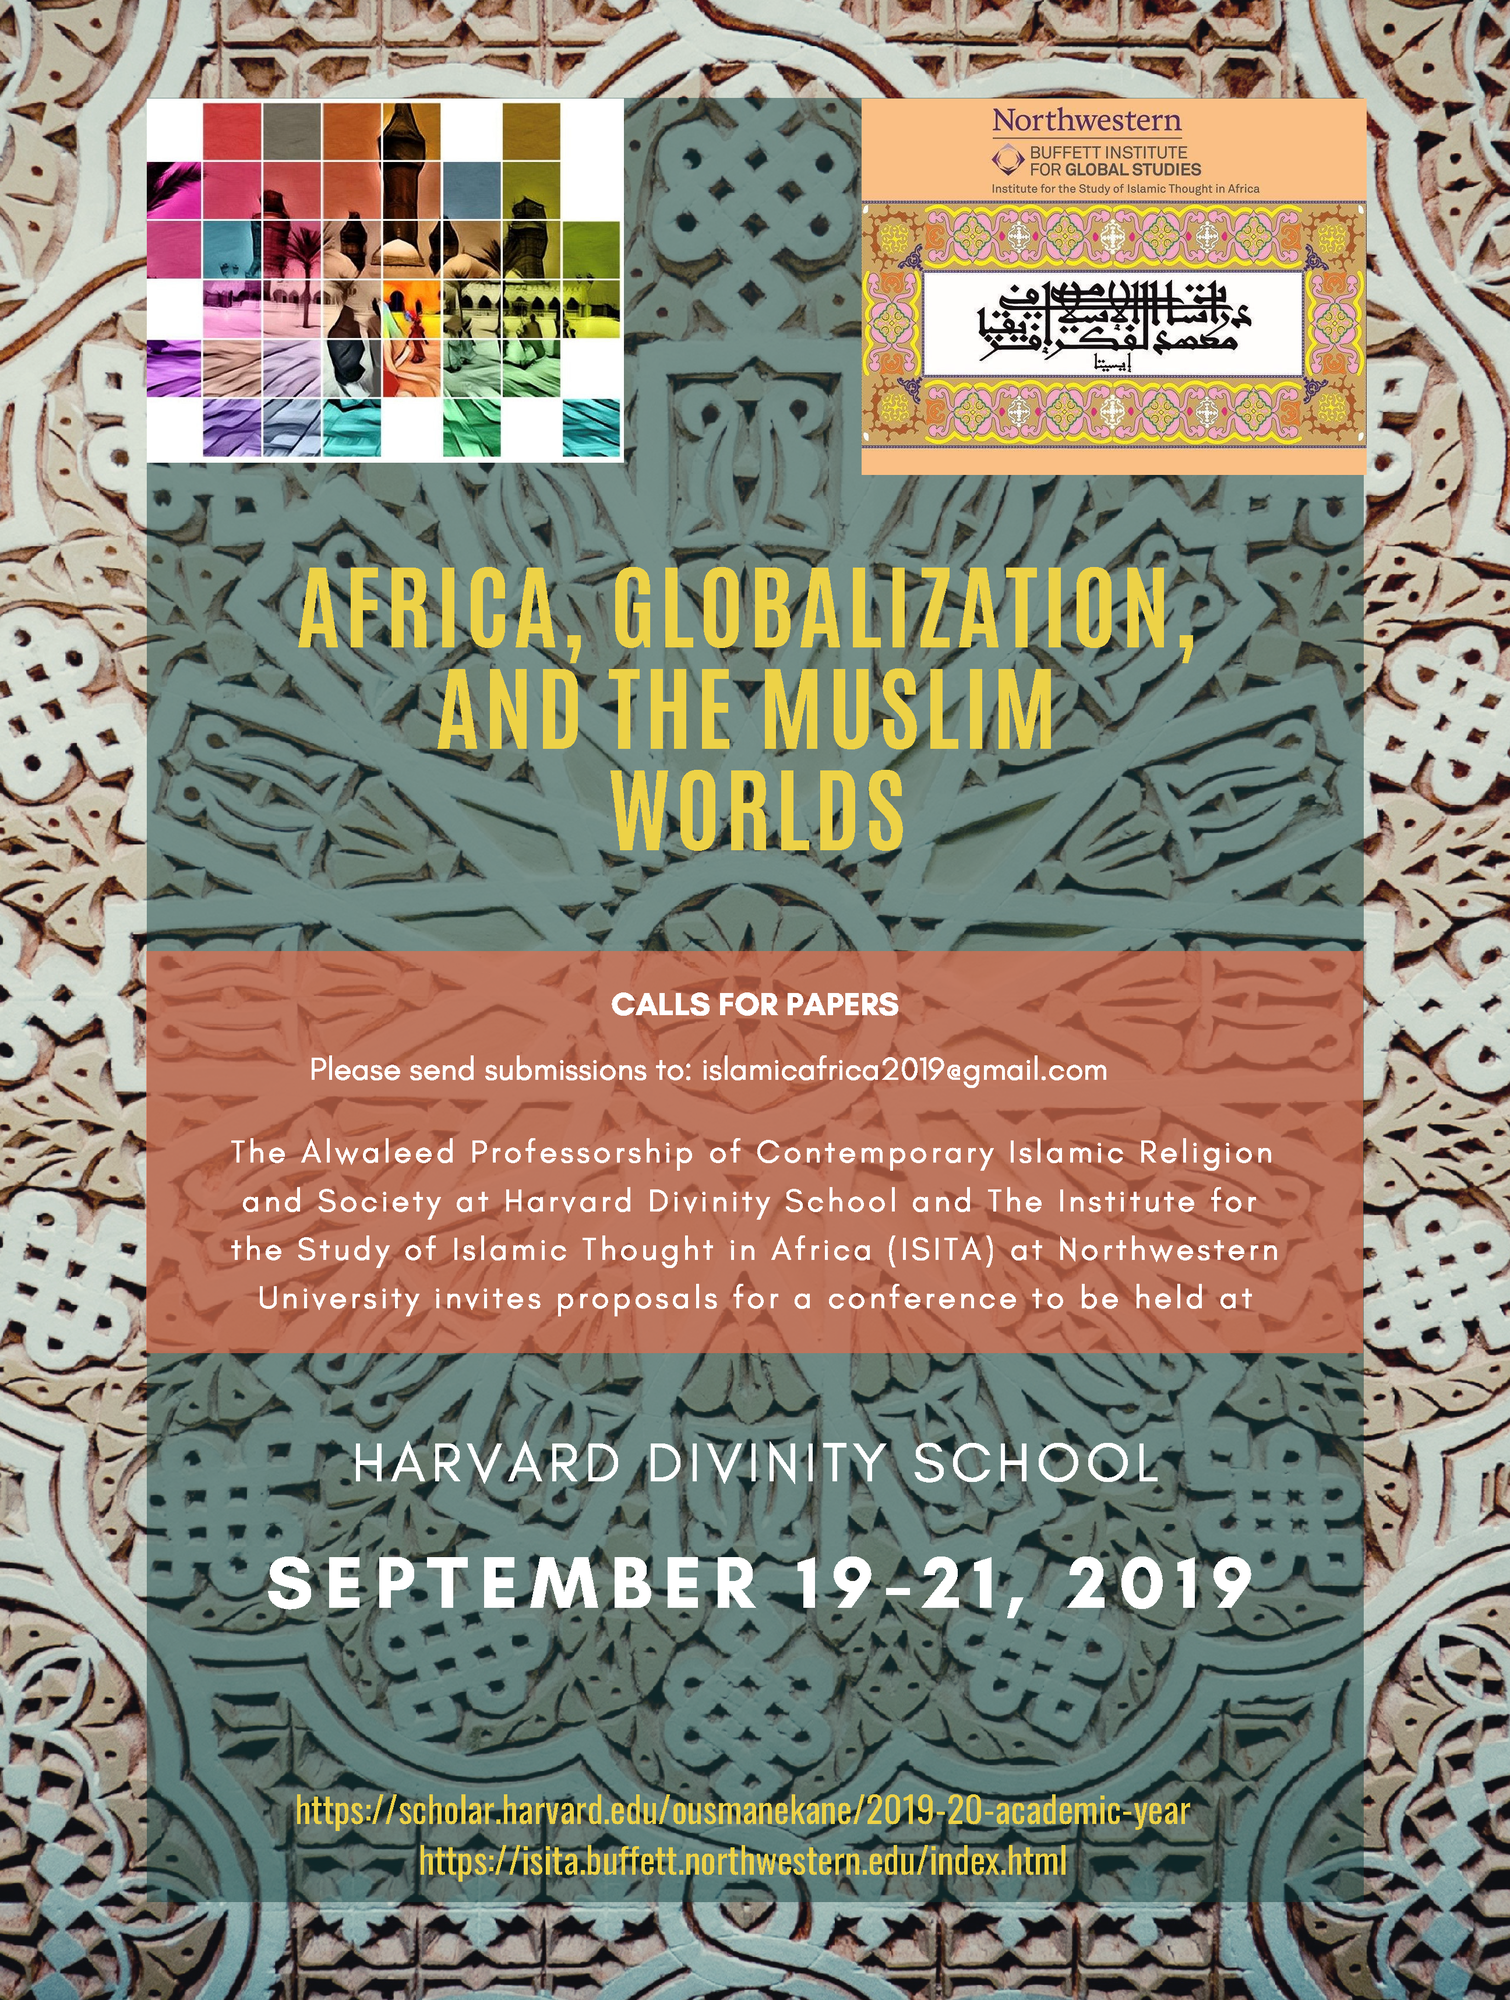 Africa Globalization and the Muslim Worlds Call for Paper Poster